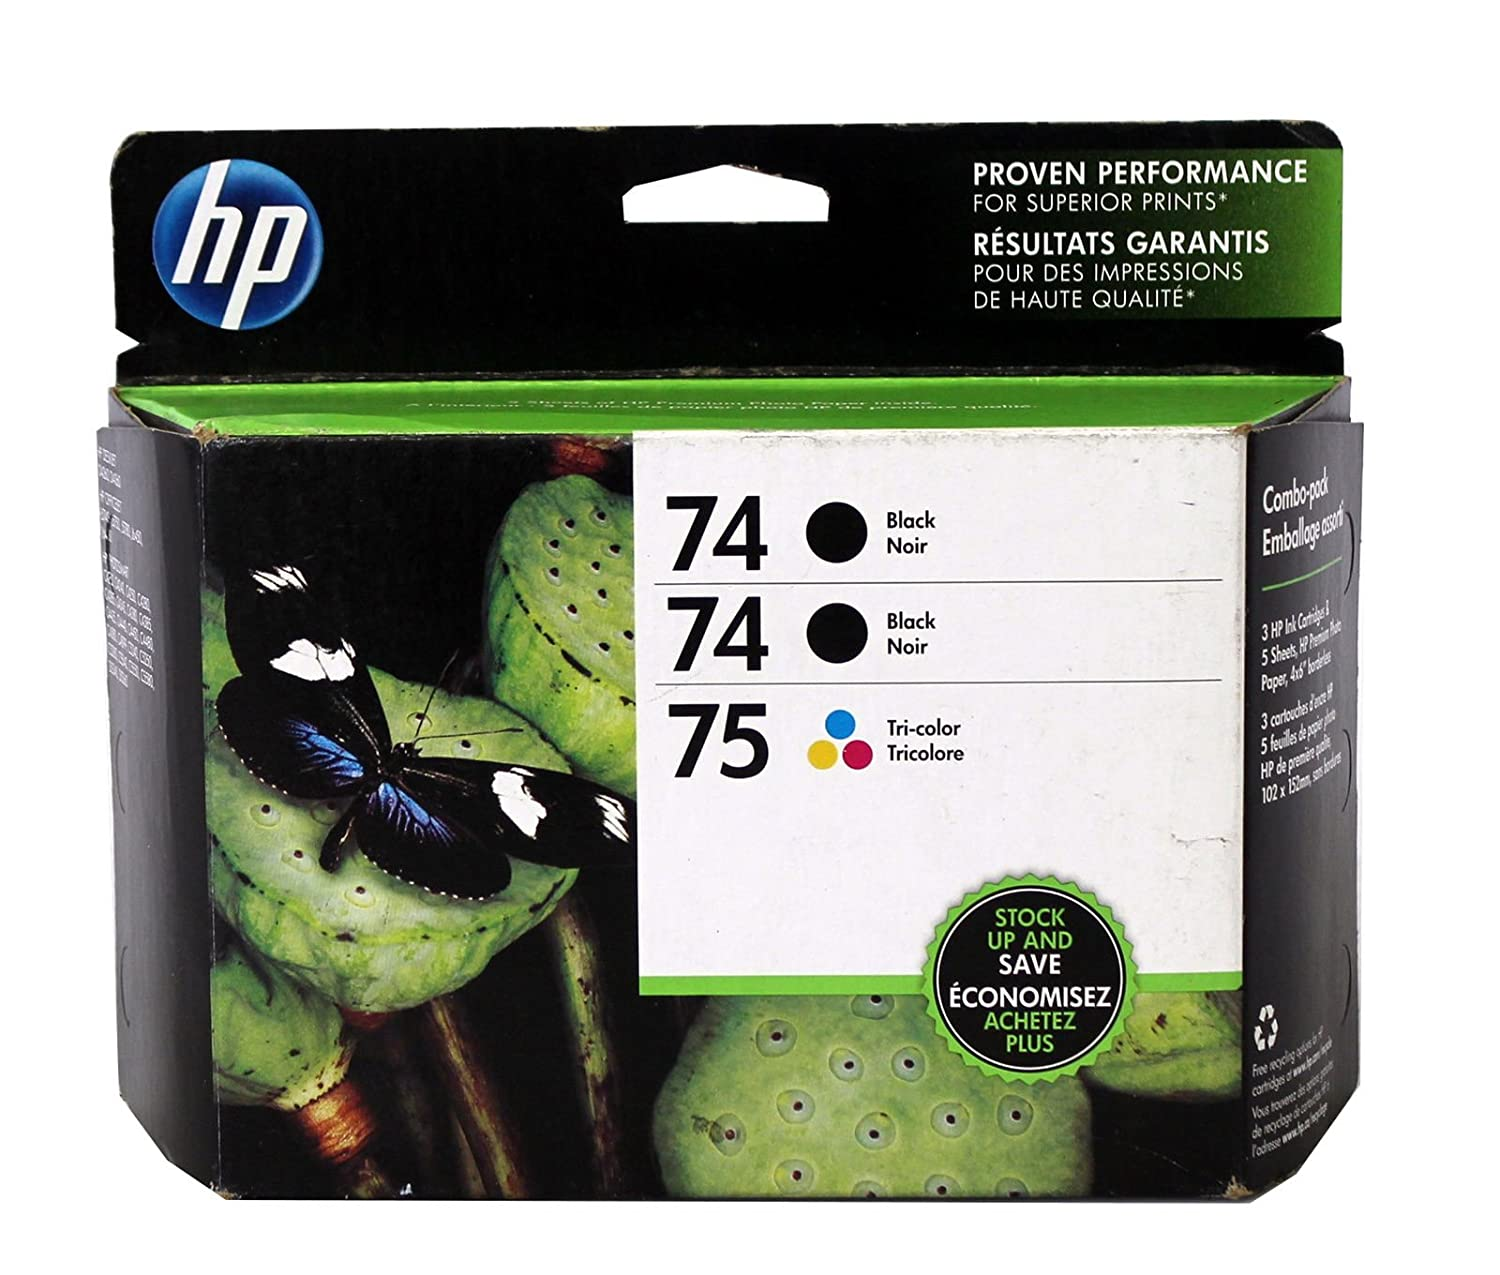 Amazon.com: Genuine Hewlett Packard 74/74/75 Threepack Combo ...